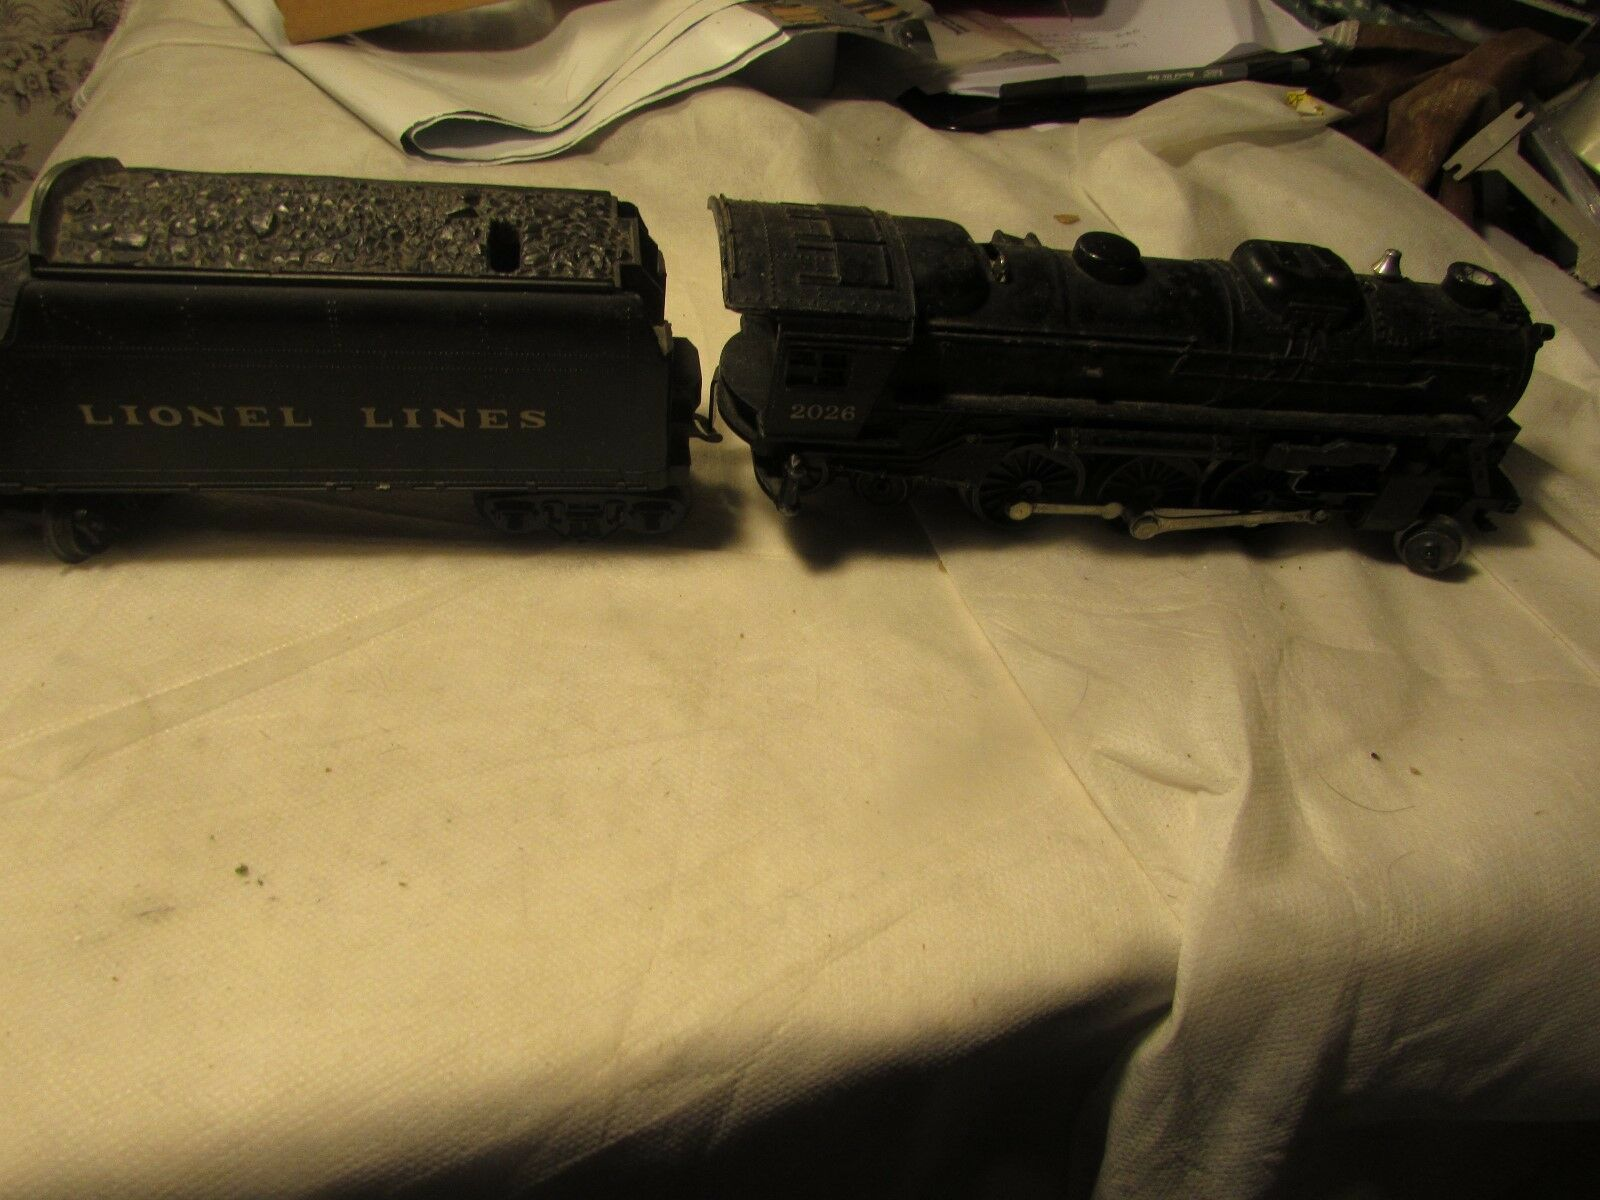 Lionel 2026 2026 2026  2-6-4 Locomotive with 6066T Tender with scatolaed, post war c884e9